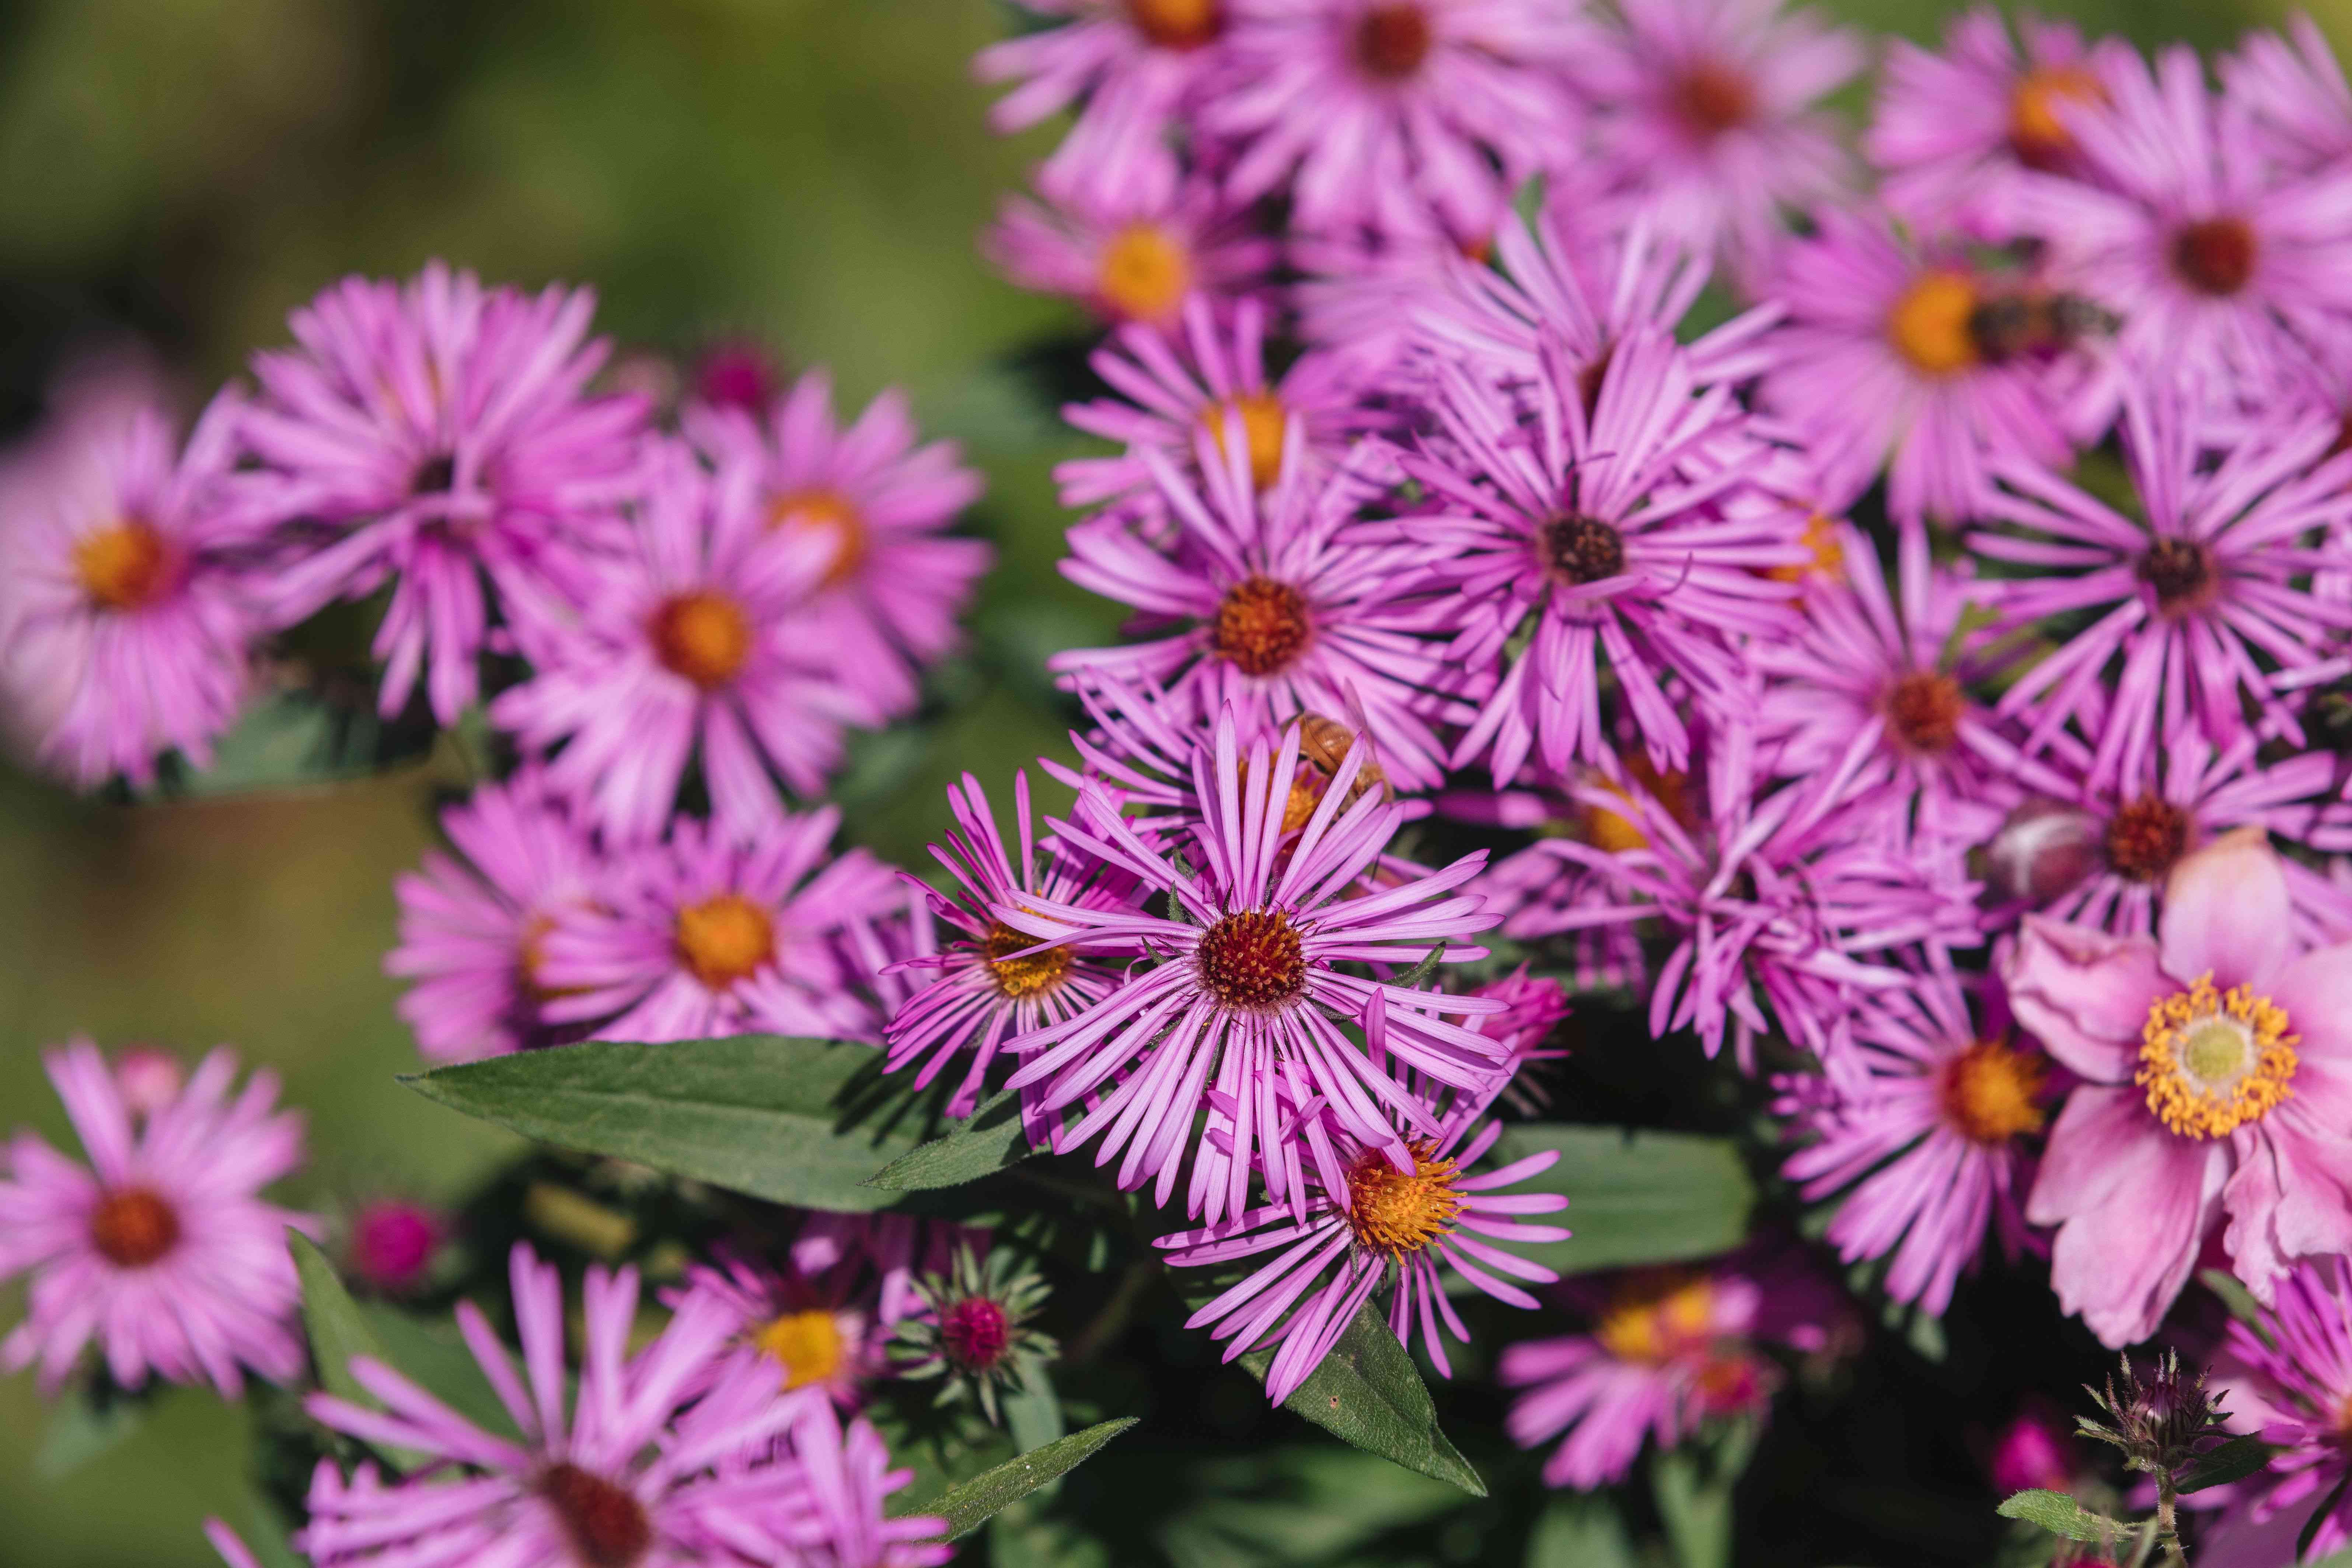 New England aster flowers with thin pink colored petals clustered in garden